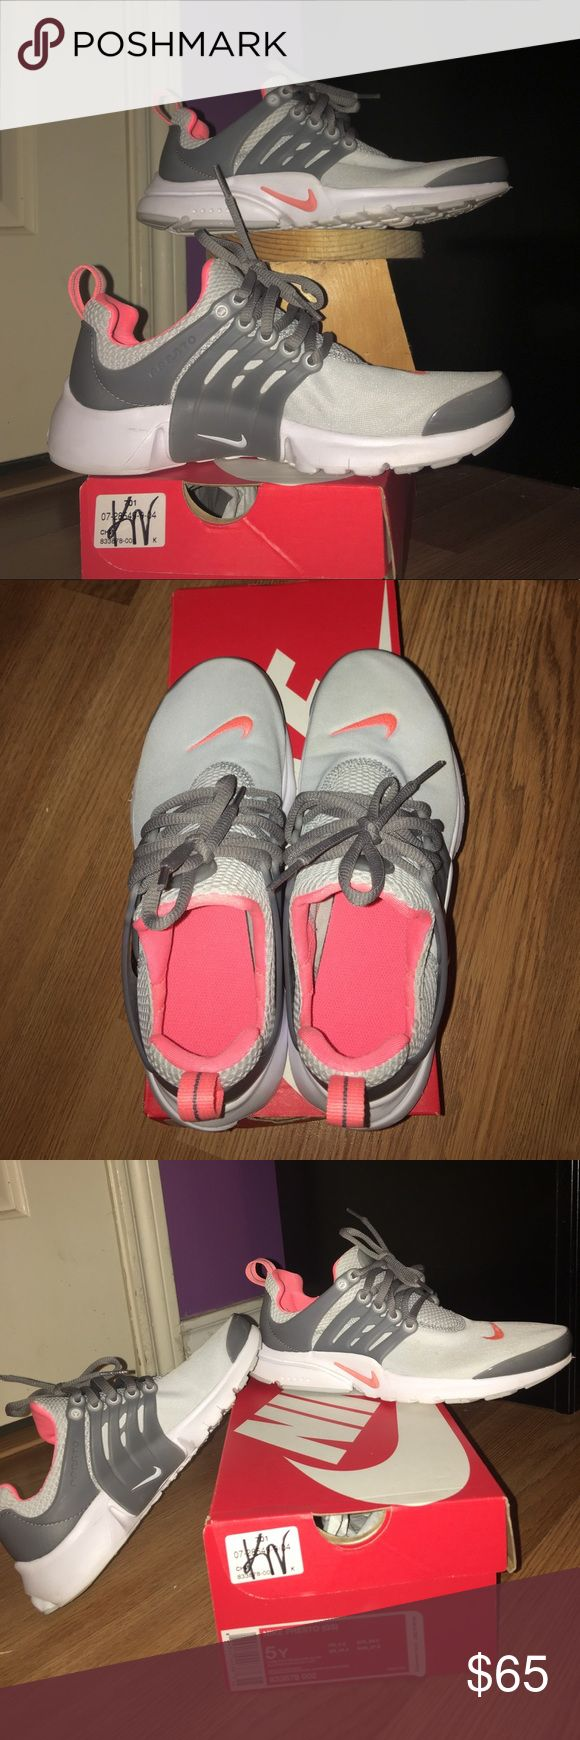 New Nike Presto Shoes Women Size 7 / Girls Size 5Y NEW 10/10 condition Nike Presto Shoes Size 7W / 5Y Nike Shoes Athletic Shoes